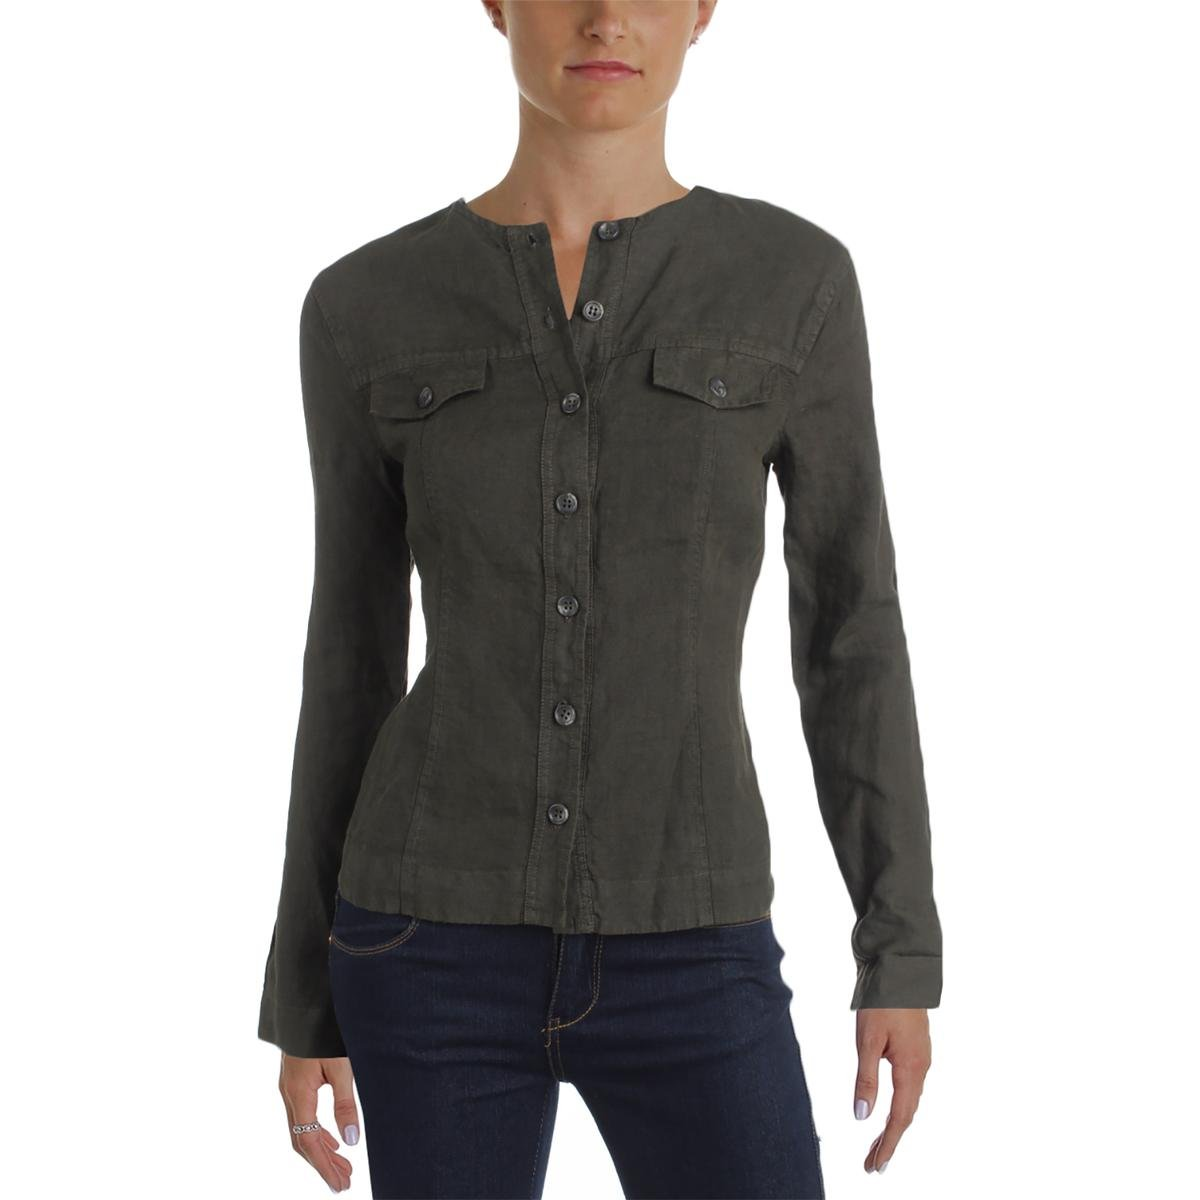 Three Dots Womens Linen Button-up Jacket Green XS by Three Dots (Image #1)